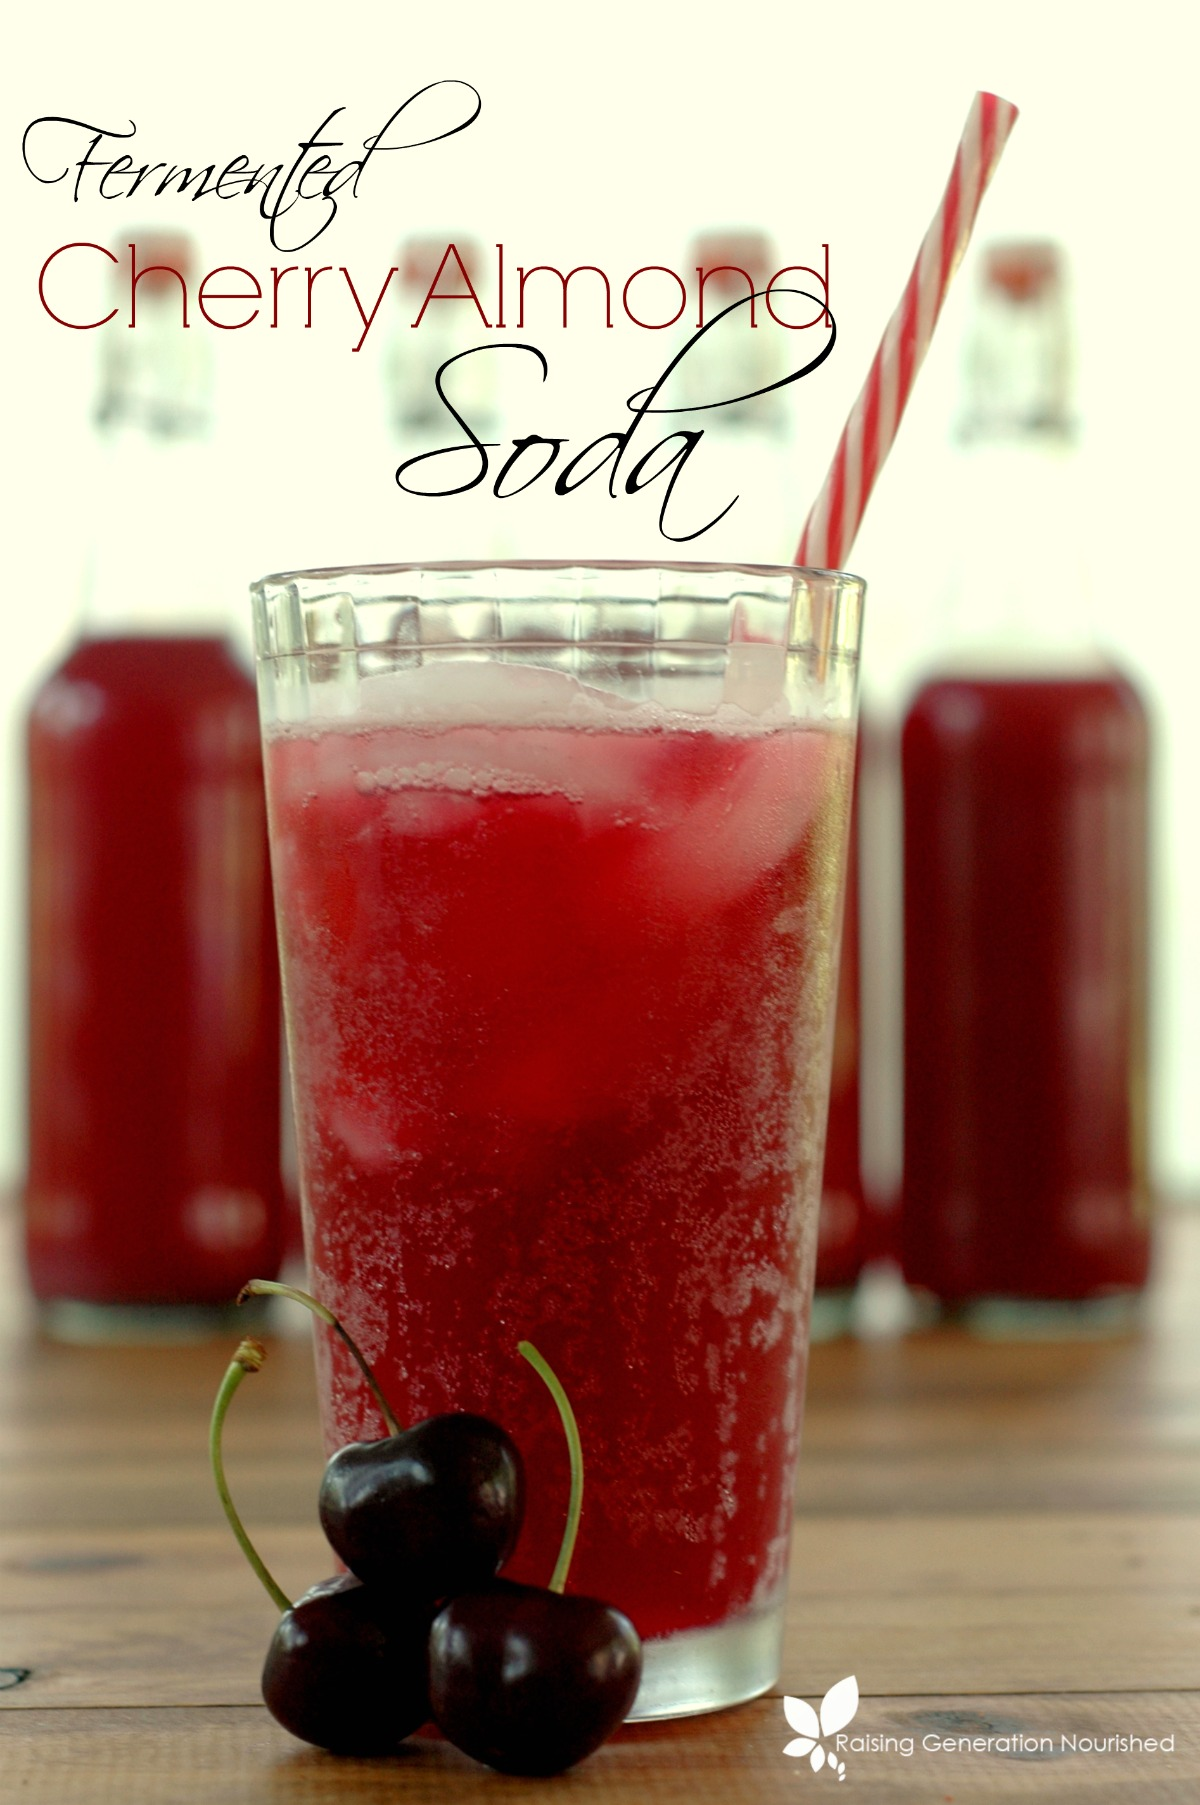 Fermented Cherry Almond Soda